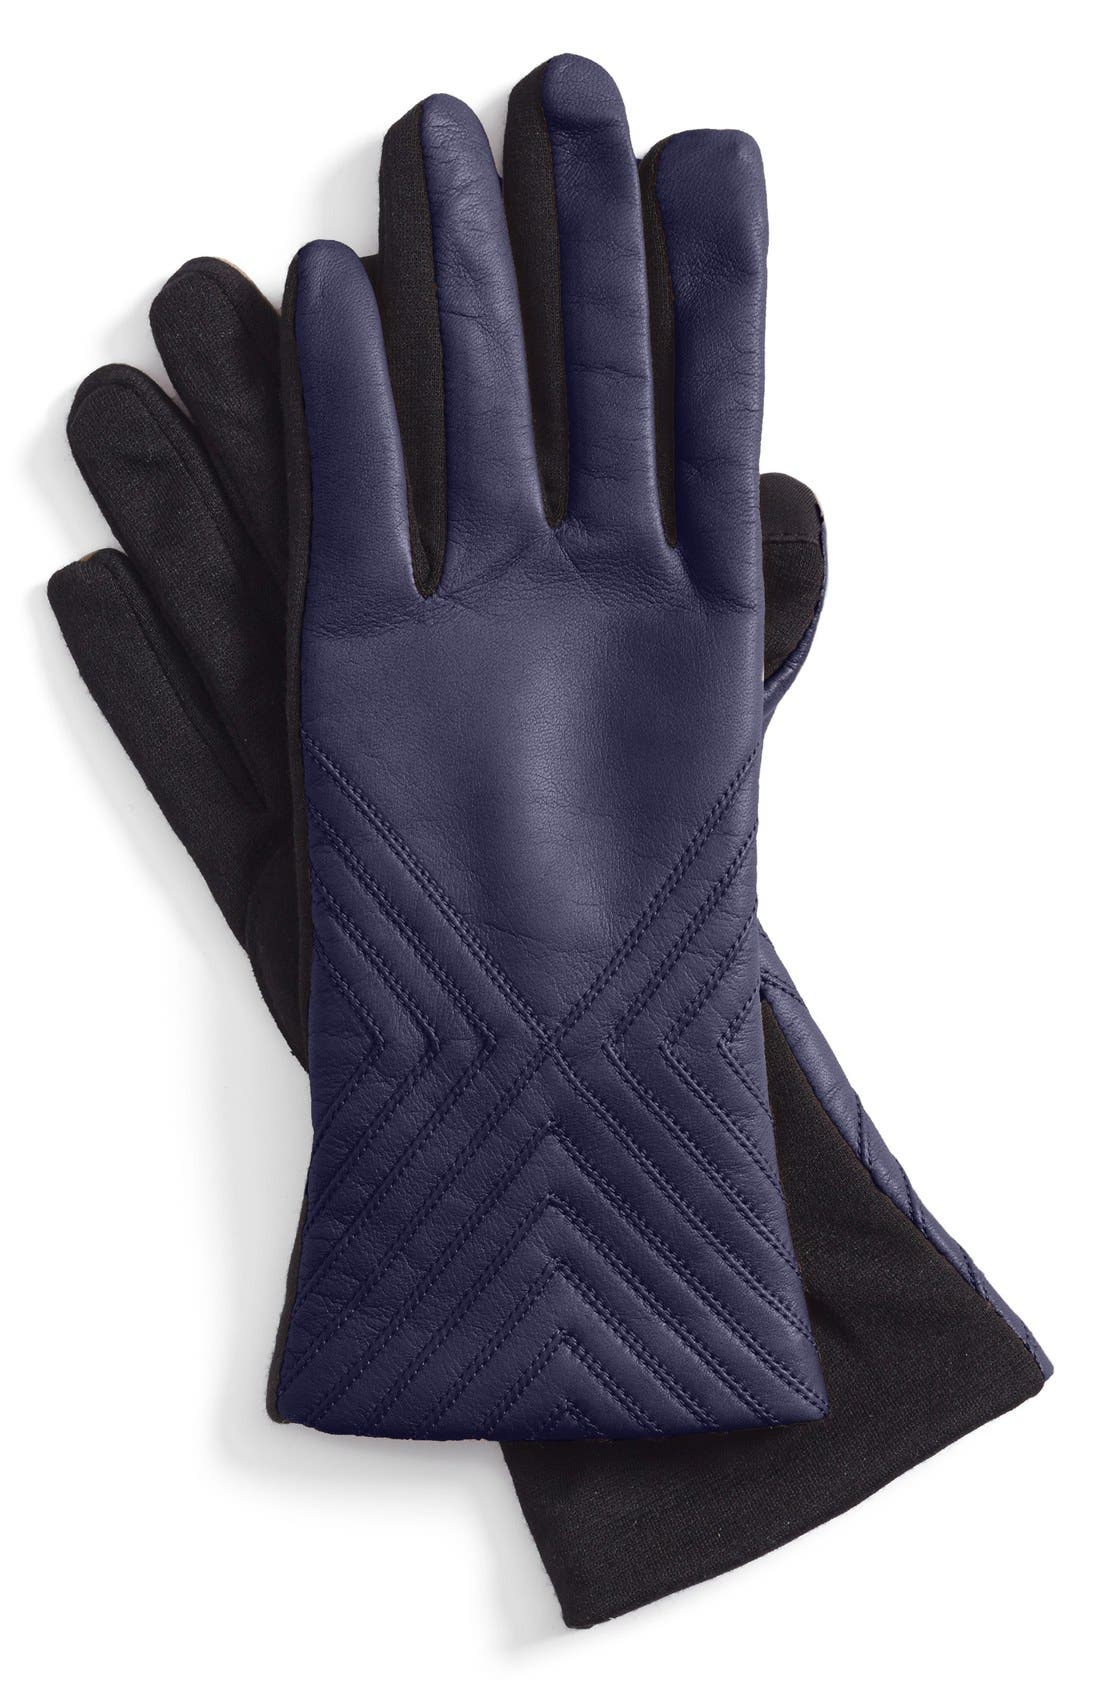 Alternate Image 1 Selected - Fownes Brothers Tech Fingertip Leather & Knit Gloves